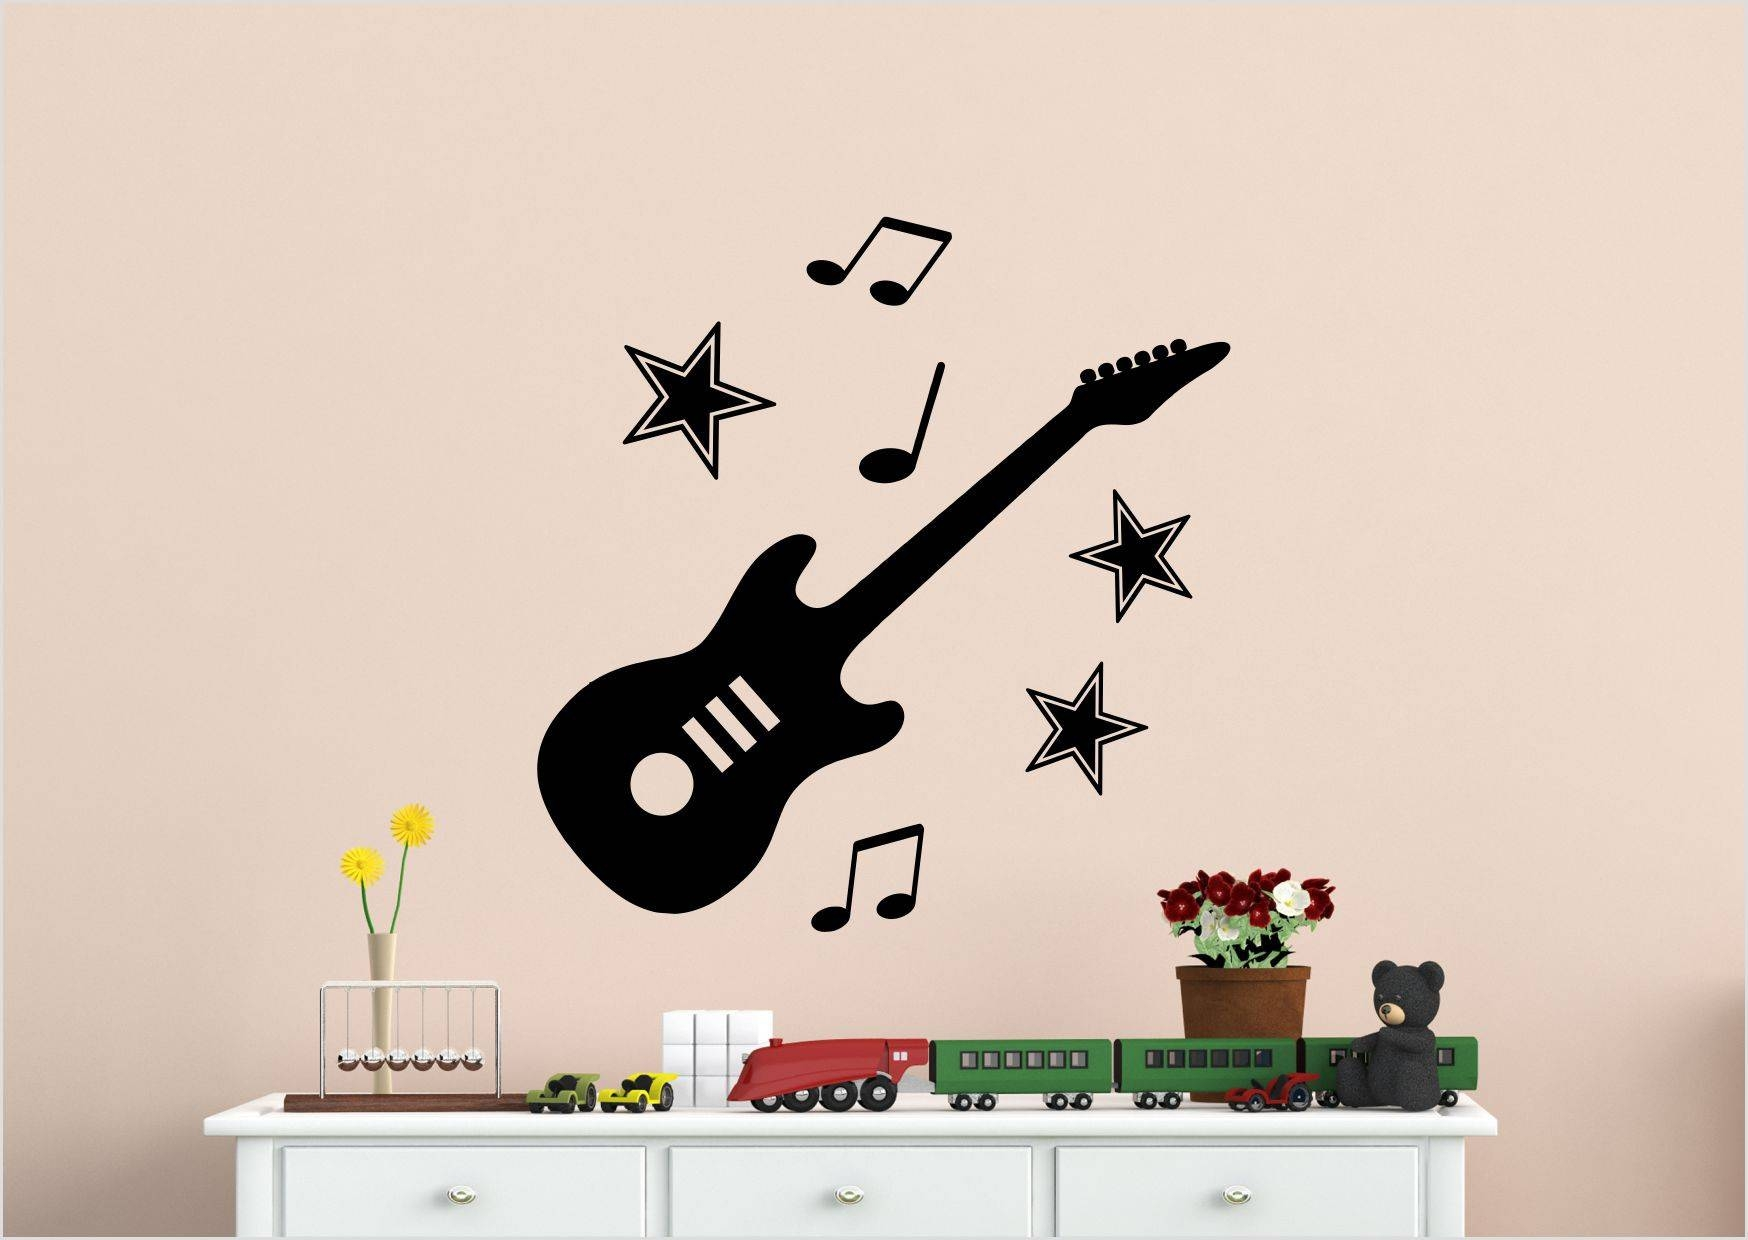 Music Notes Wall Art Decals Images That Really Cool – Desainnow For Recent Music Note Art For Walls (View 14 of 25)